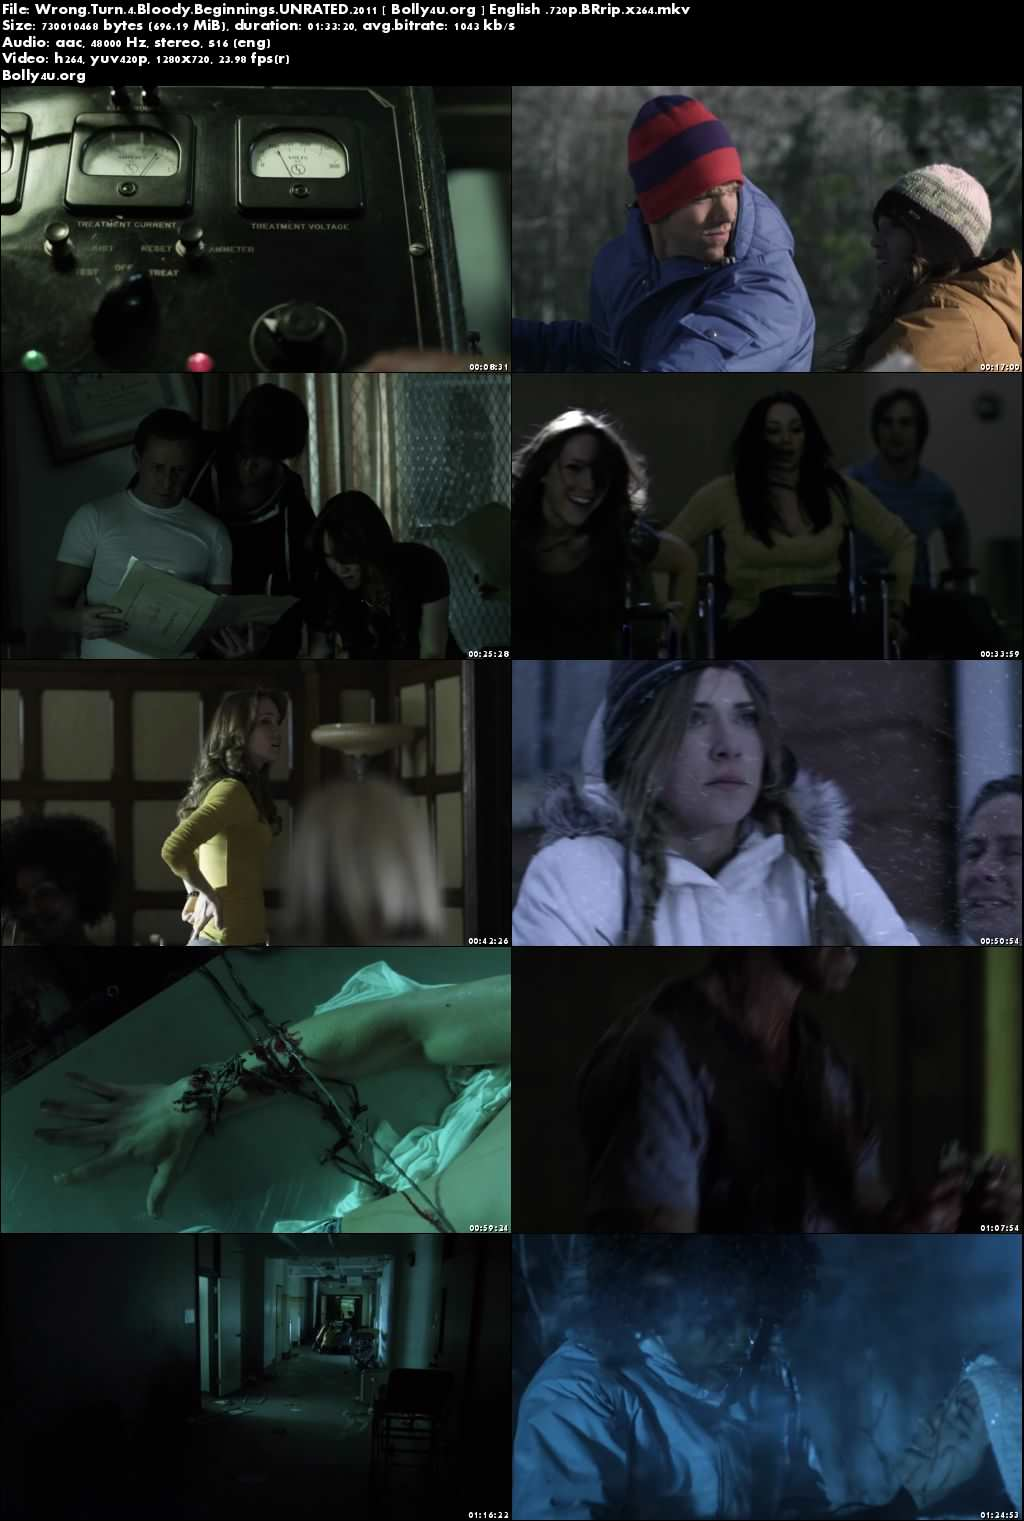 Wrong Turn 4 Bloody Beginnings 2011 BRRip 280Mb UNRATED English 480p Download